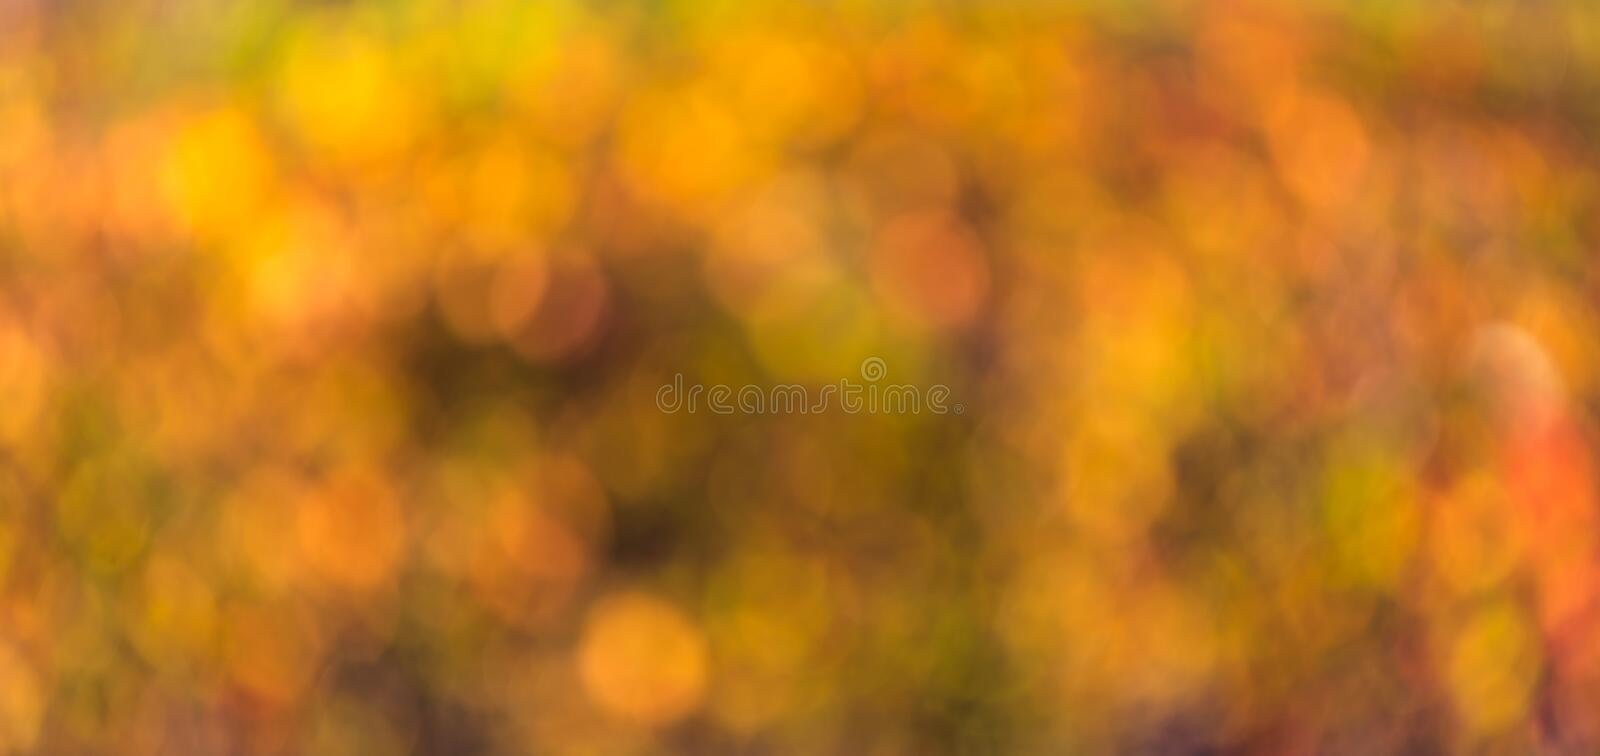 Autumn blurred abstract background. An autumn blurred abstract background stock images